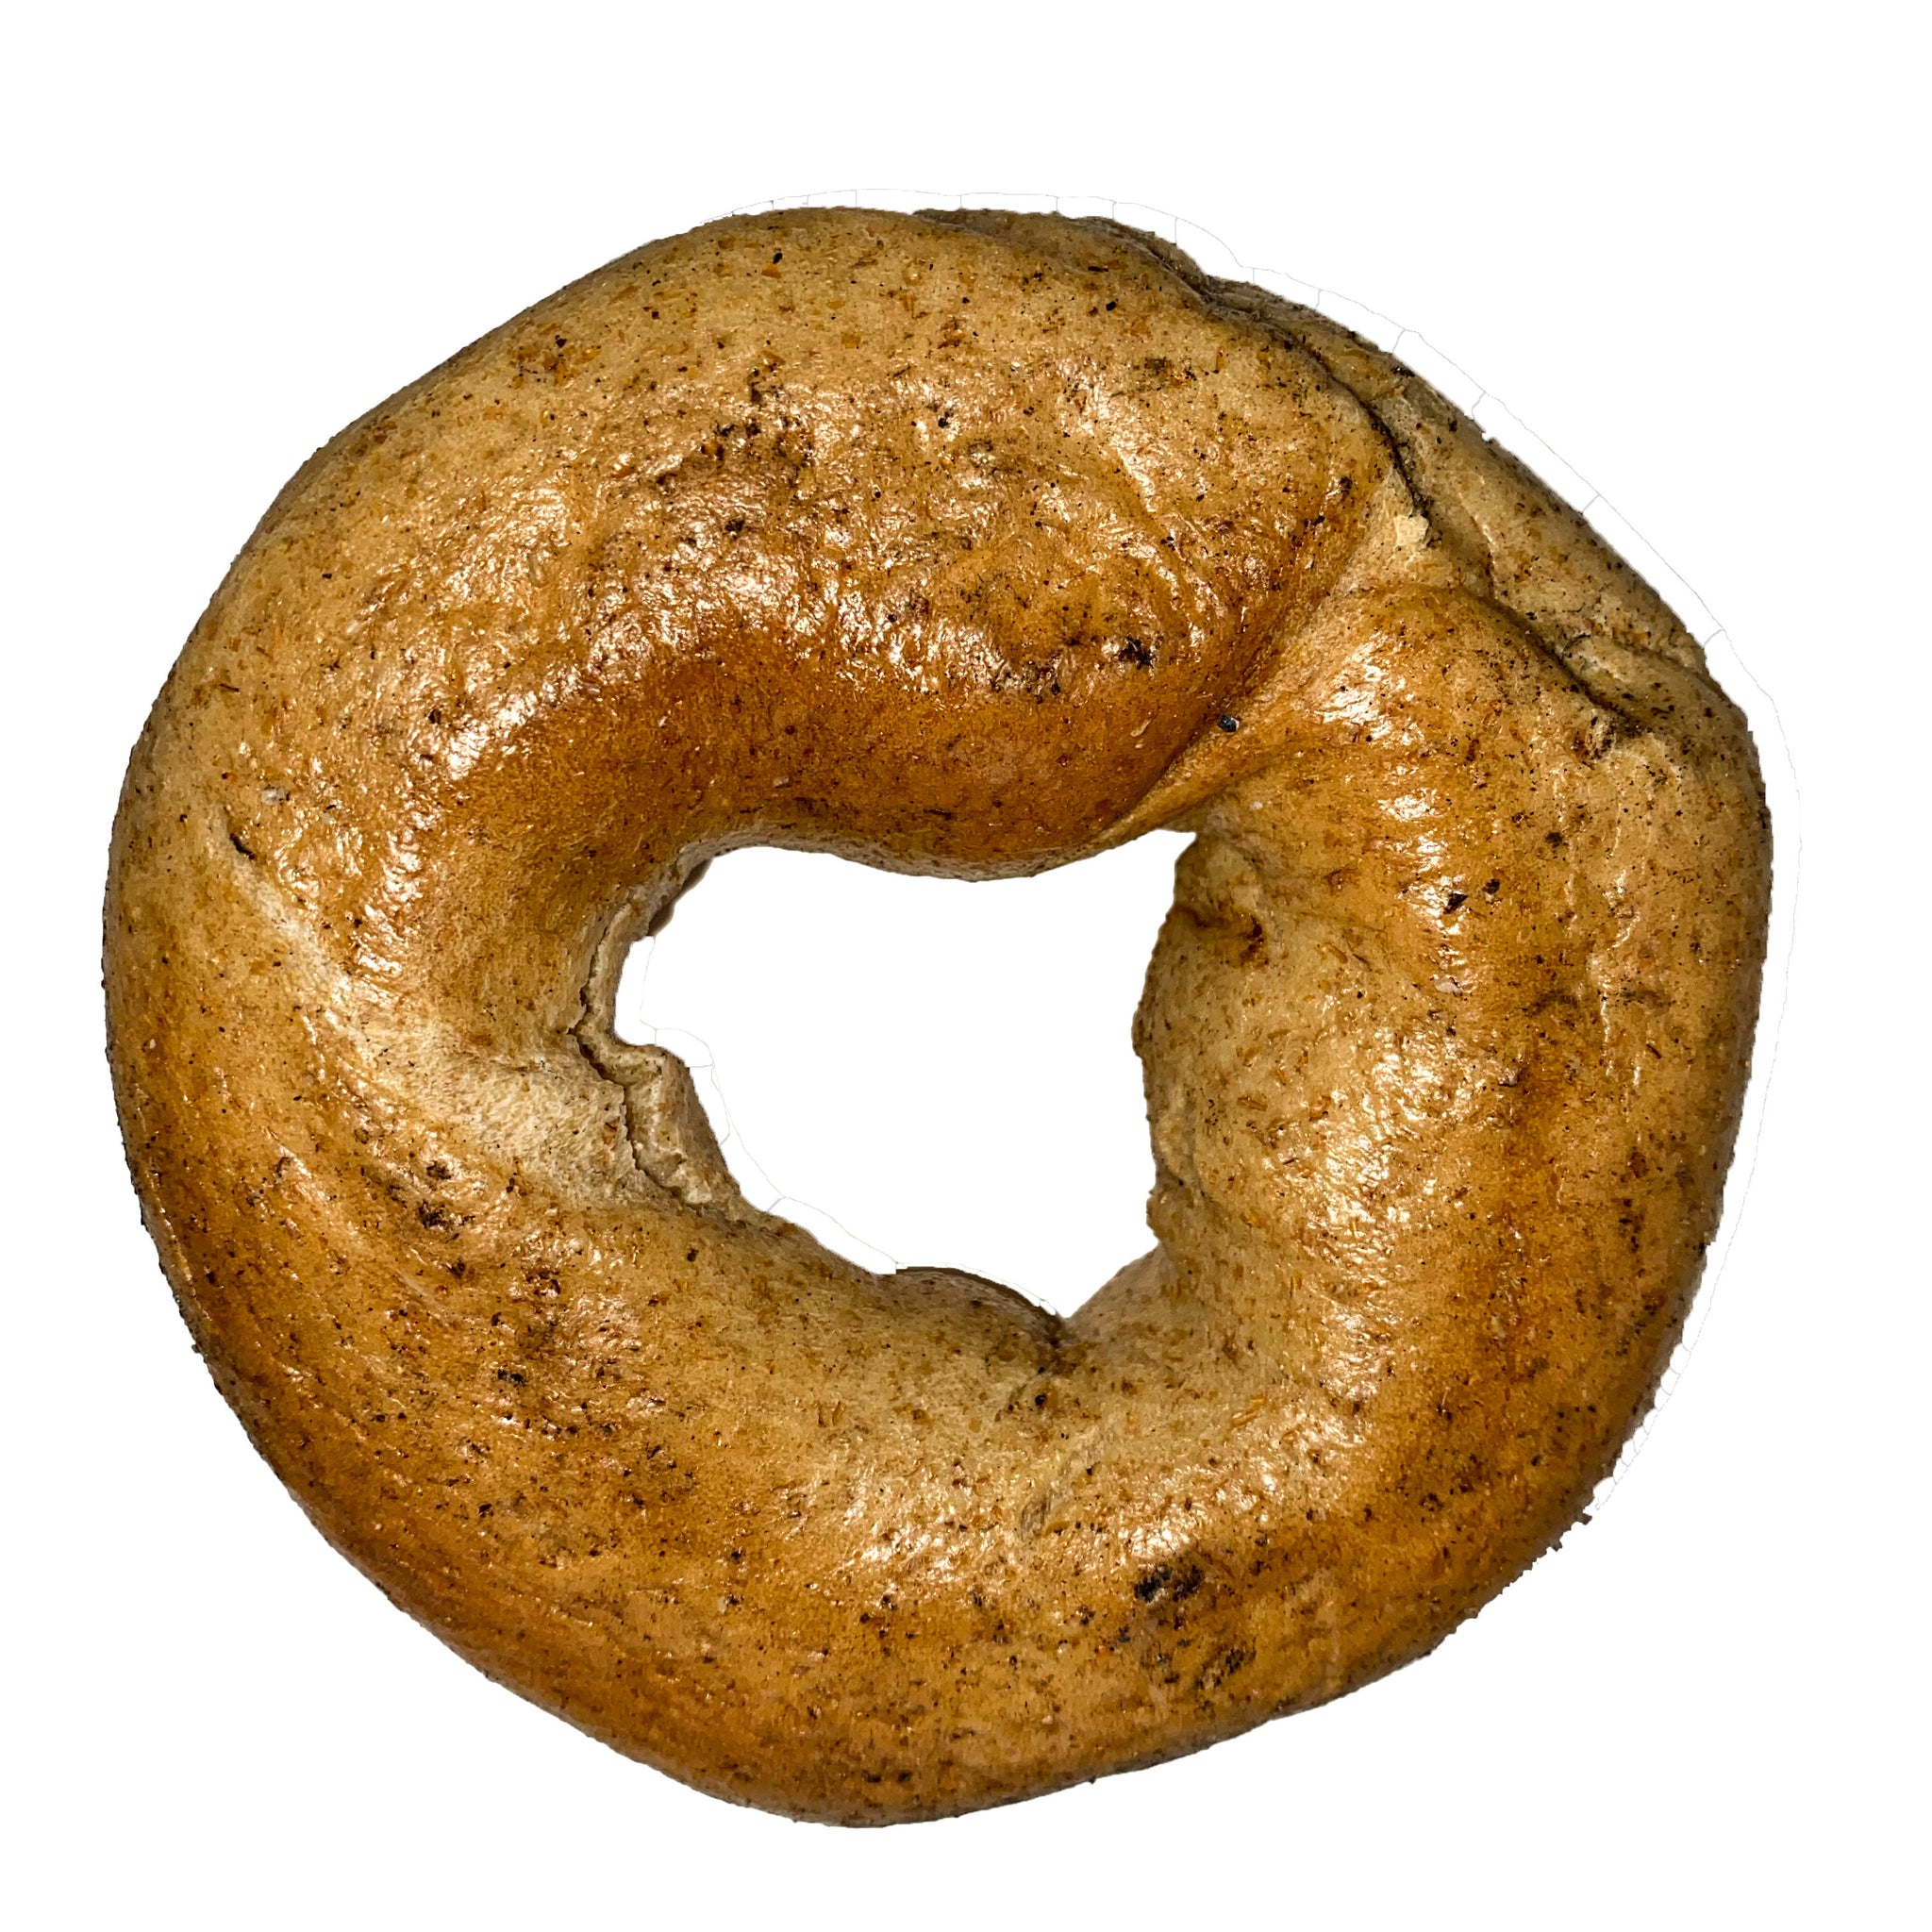 Montreal Style Bagel (Whole Wheat) Limited Quantities!